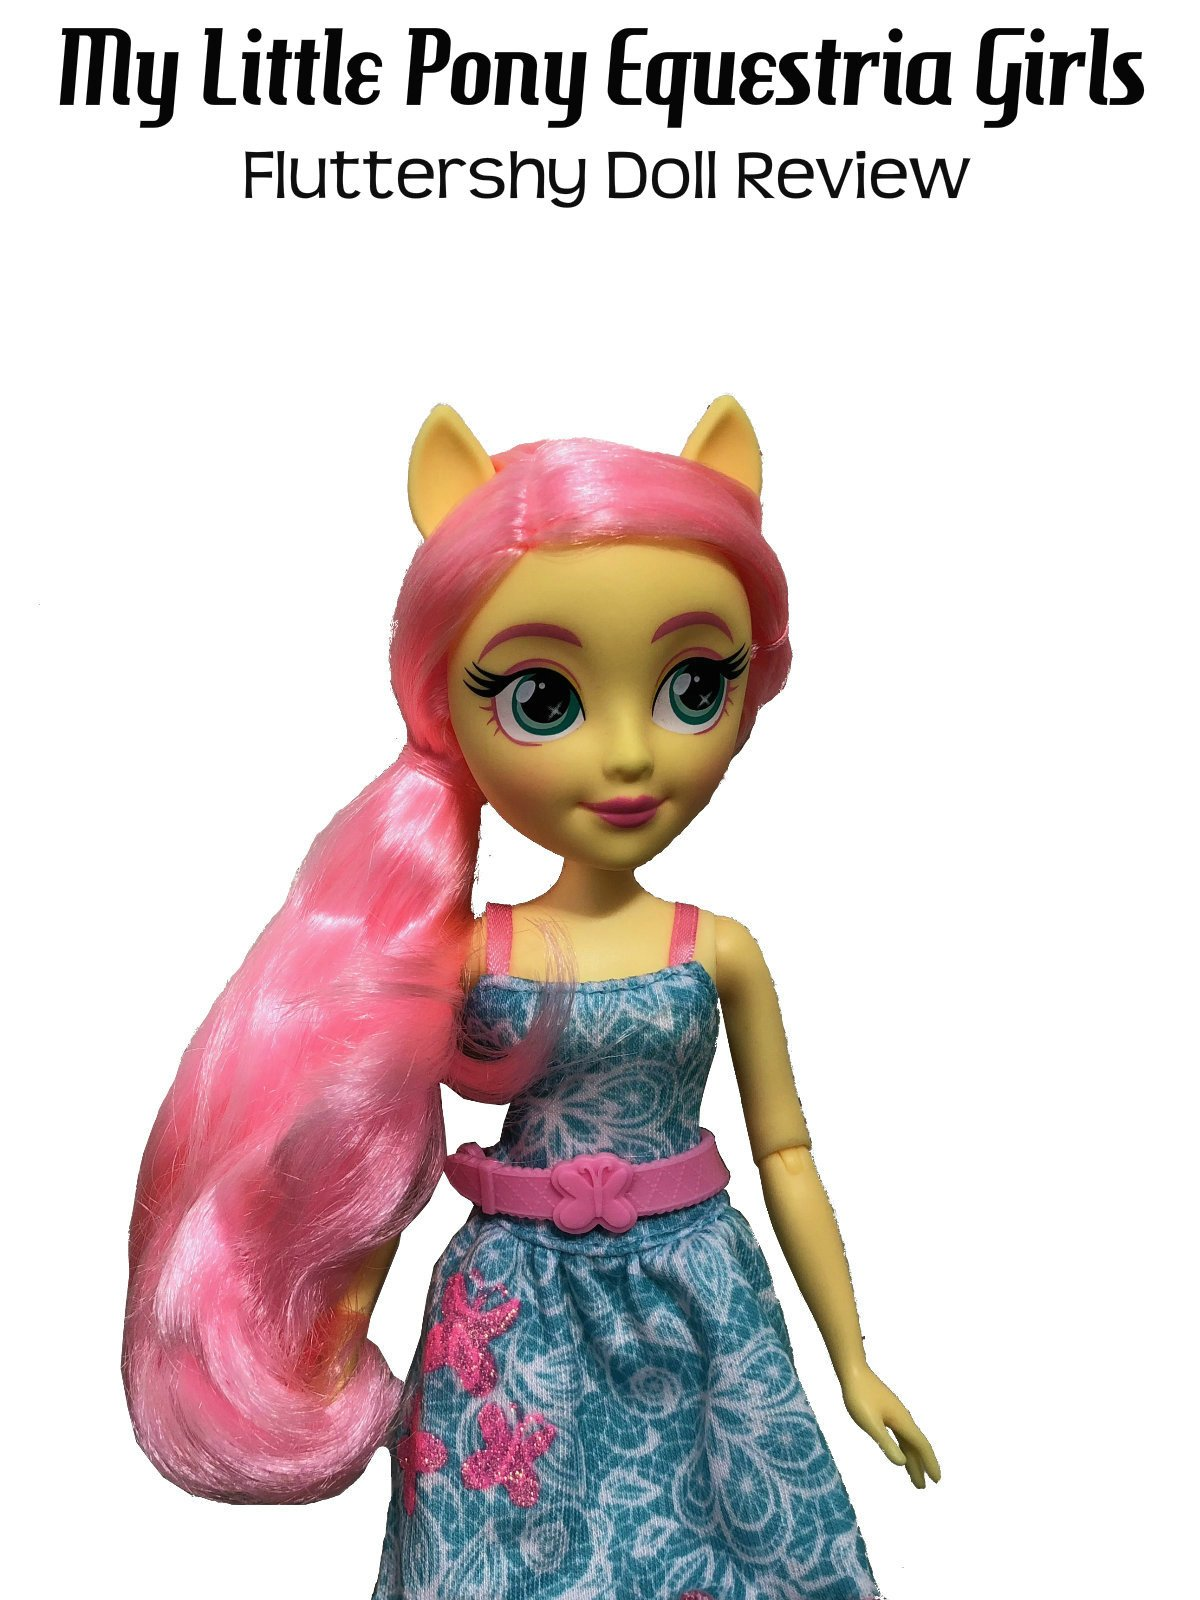 Review: My Little Pony Equestria Girls Fluttershy Doll Review